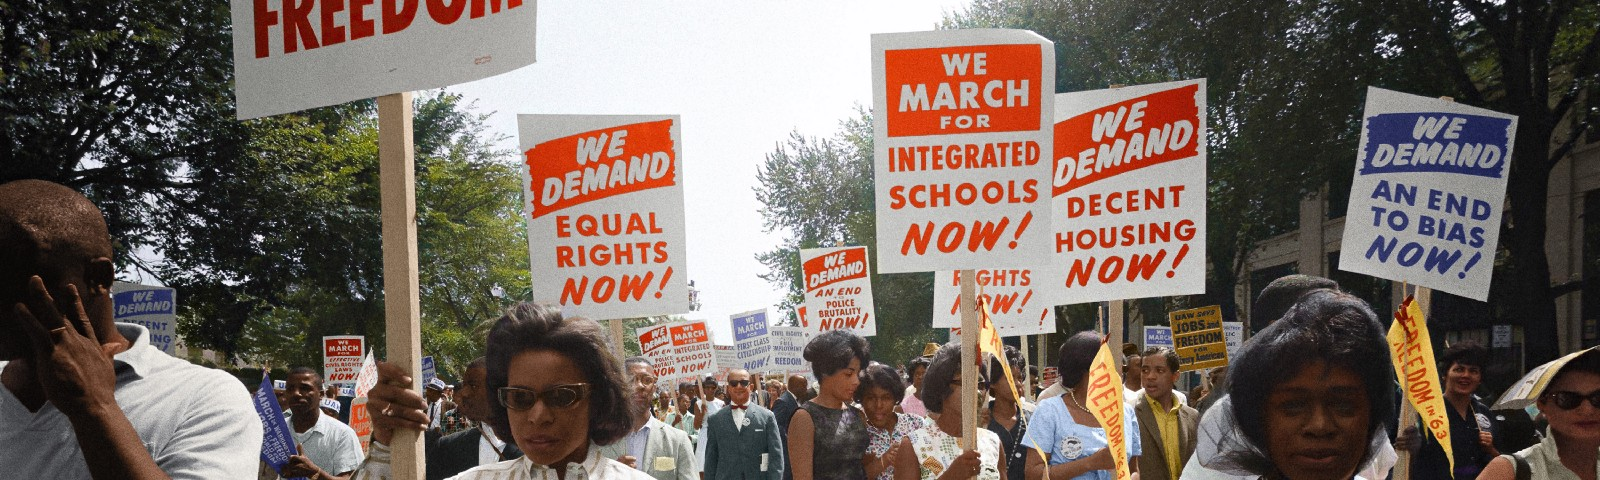 """Civil rights march on Washington, D.C. on August 28th, 1963. Women in foreground hold up signs reading: """"we demand equal rights now, we march for integrated schools now, we demand an end to bias now, and we demand decent housing now."""""""